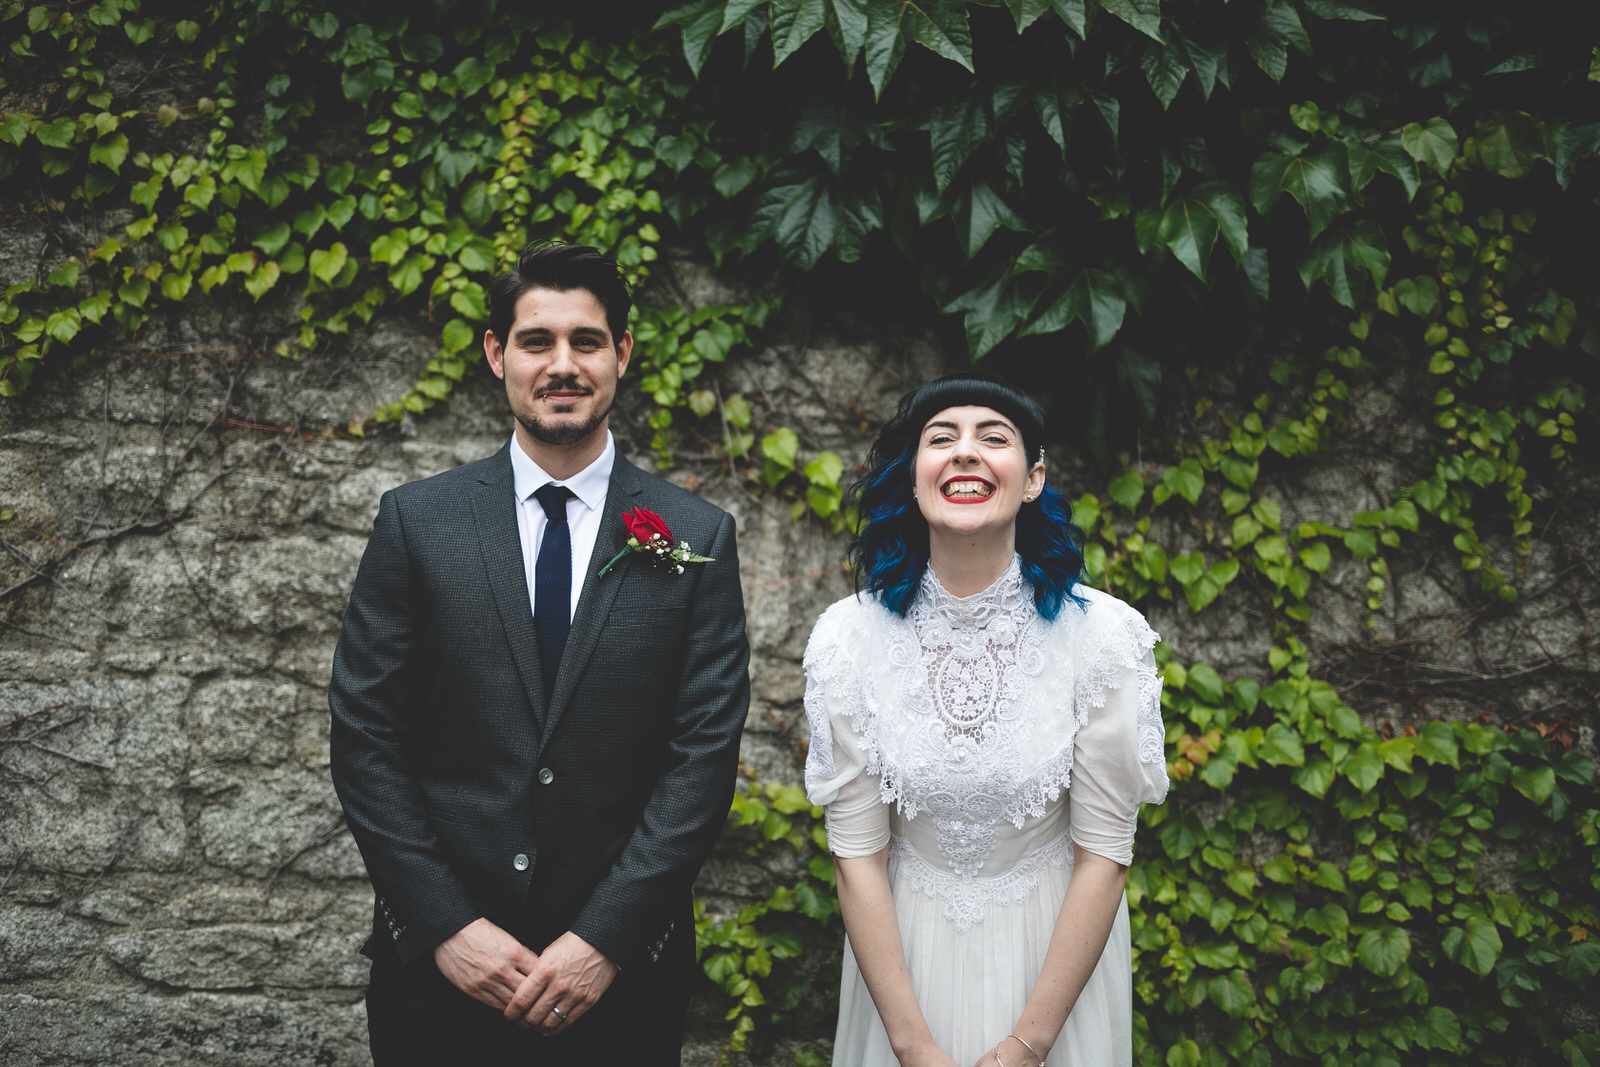 Iveagh Gardens wedding photographs